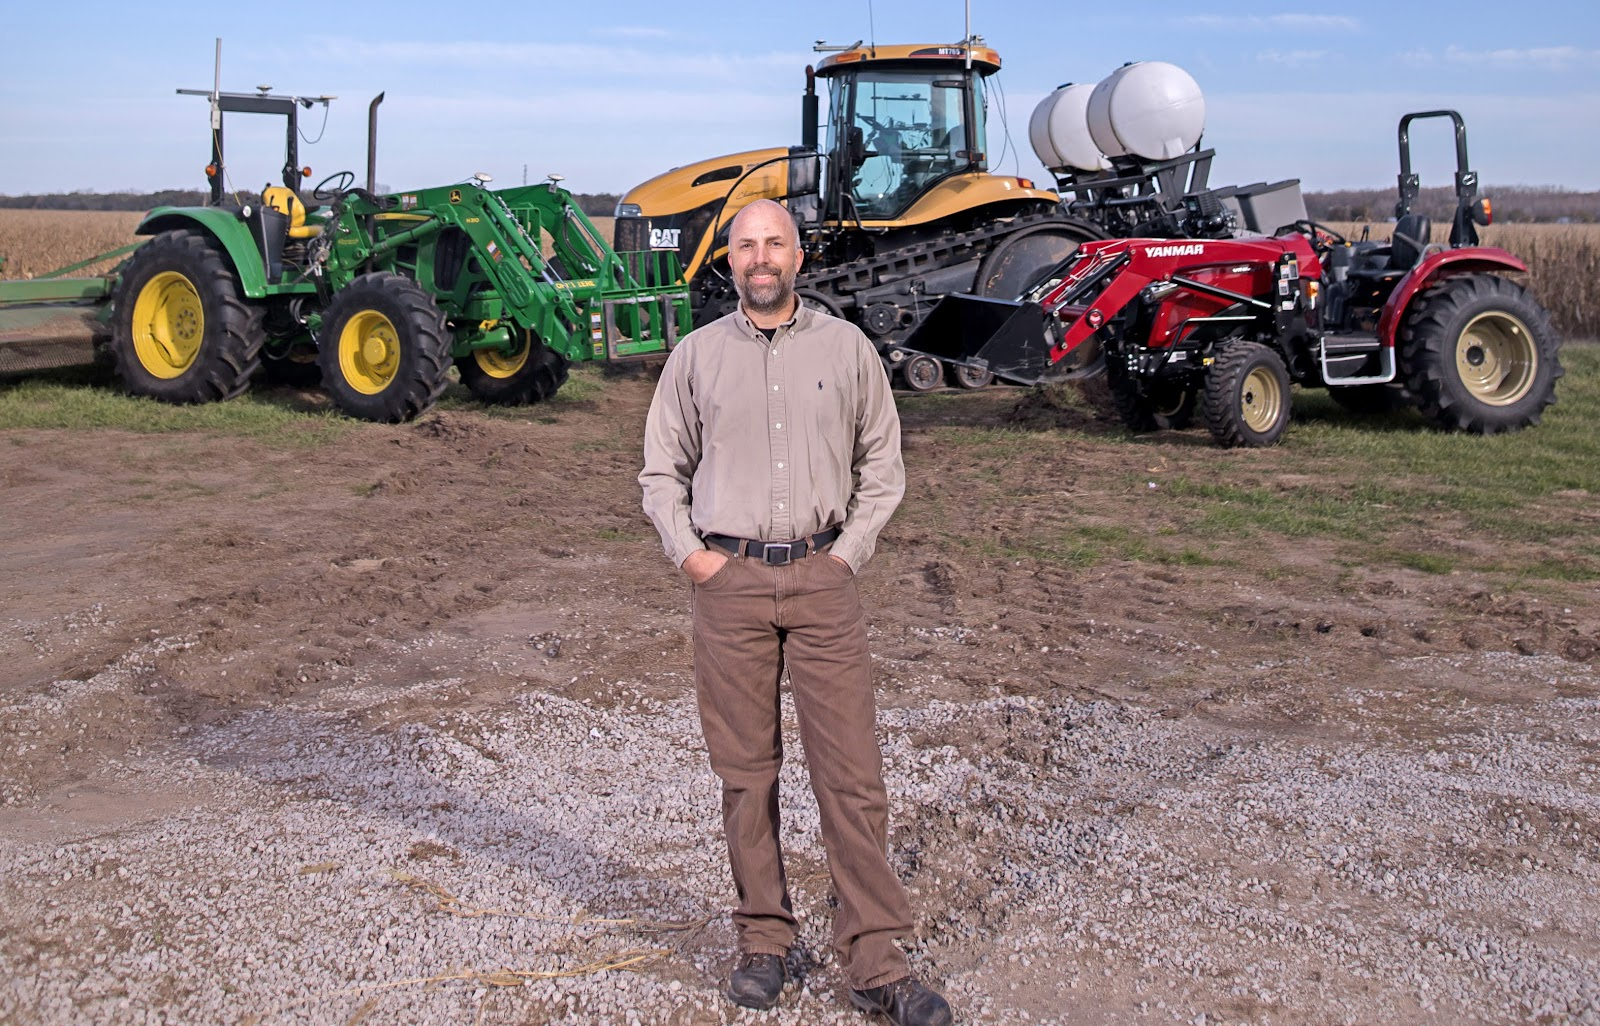 Kyler Laird is about to carve a notch into agriculture history by planting 10,000 acres of soybeans with a driverless tractor. Skeptics beware: Laird has loosed the DIY robots and his operation will never be the same.